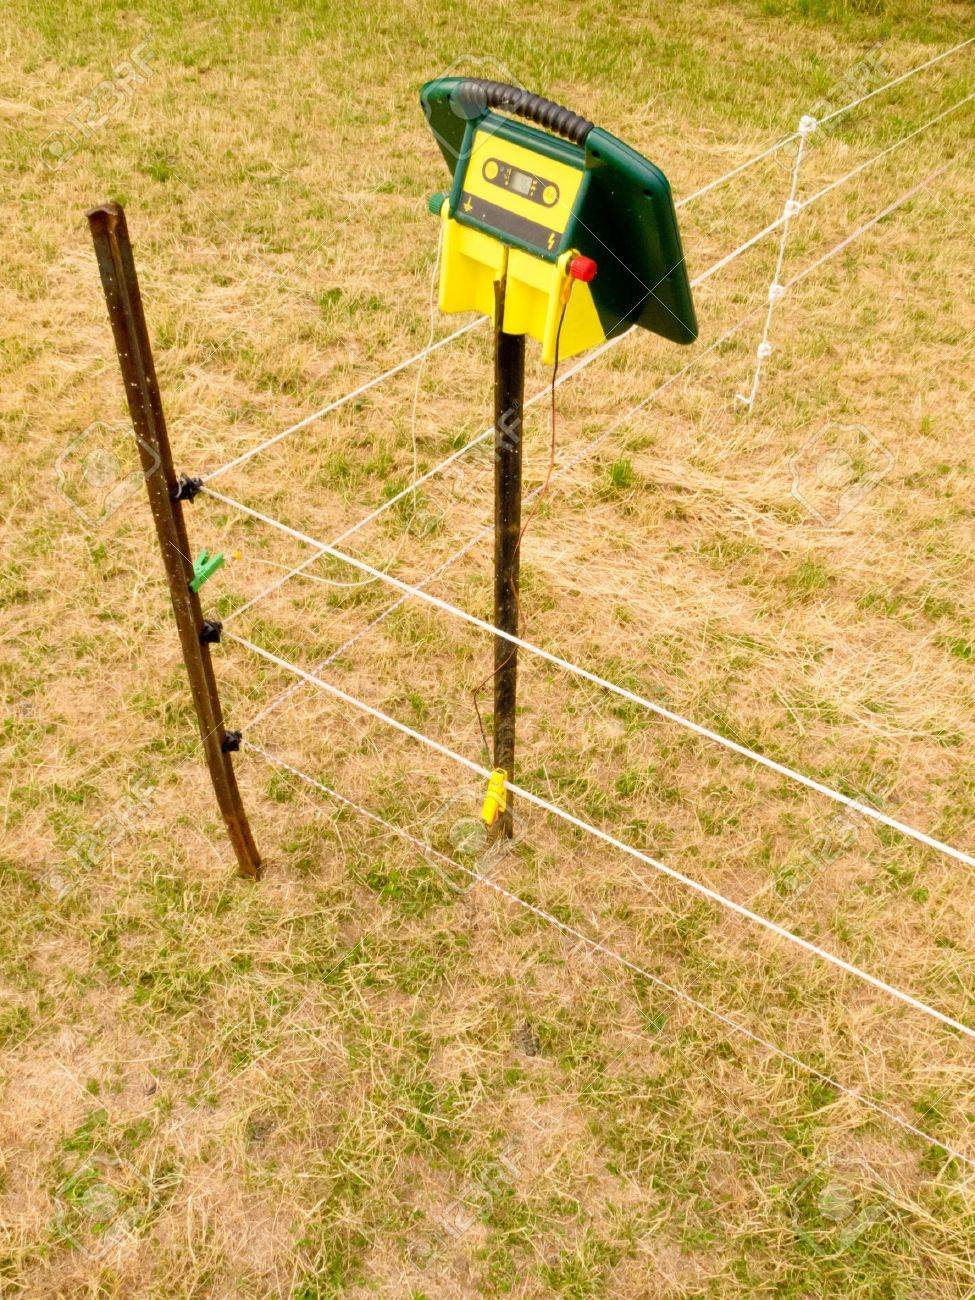 electric fence charger mounted on a pole providing the energy for electrical livestock fencing out on